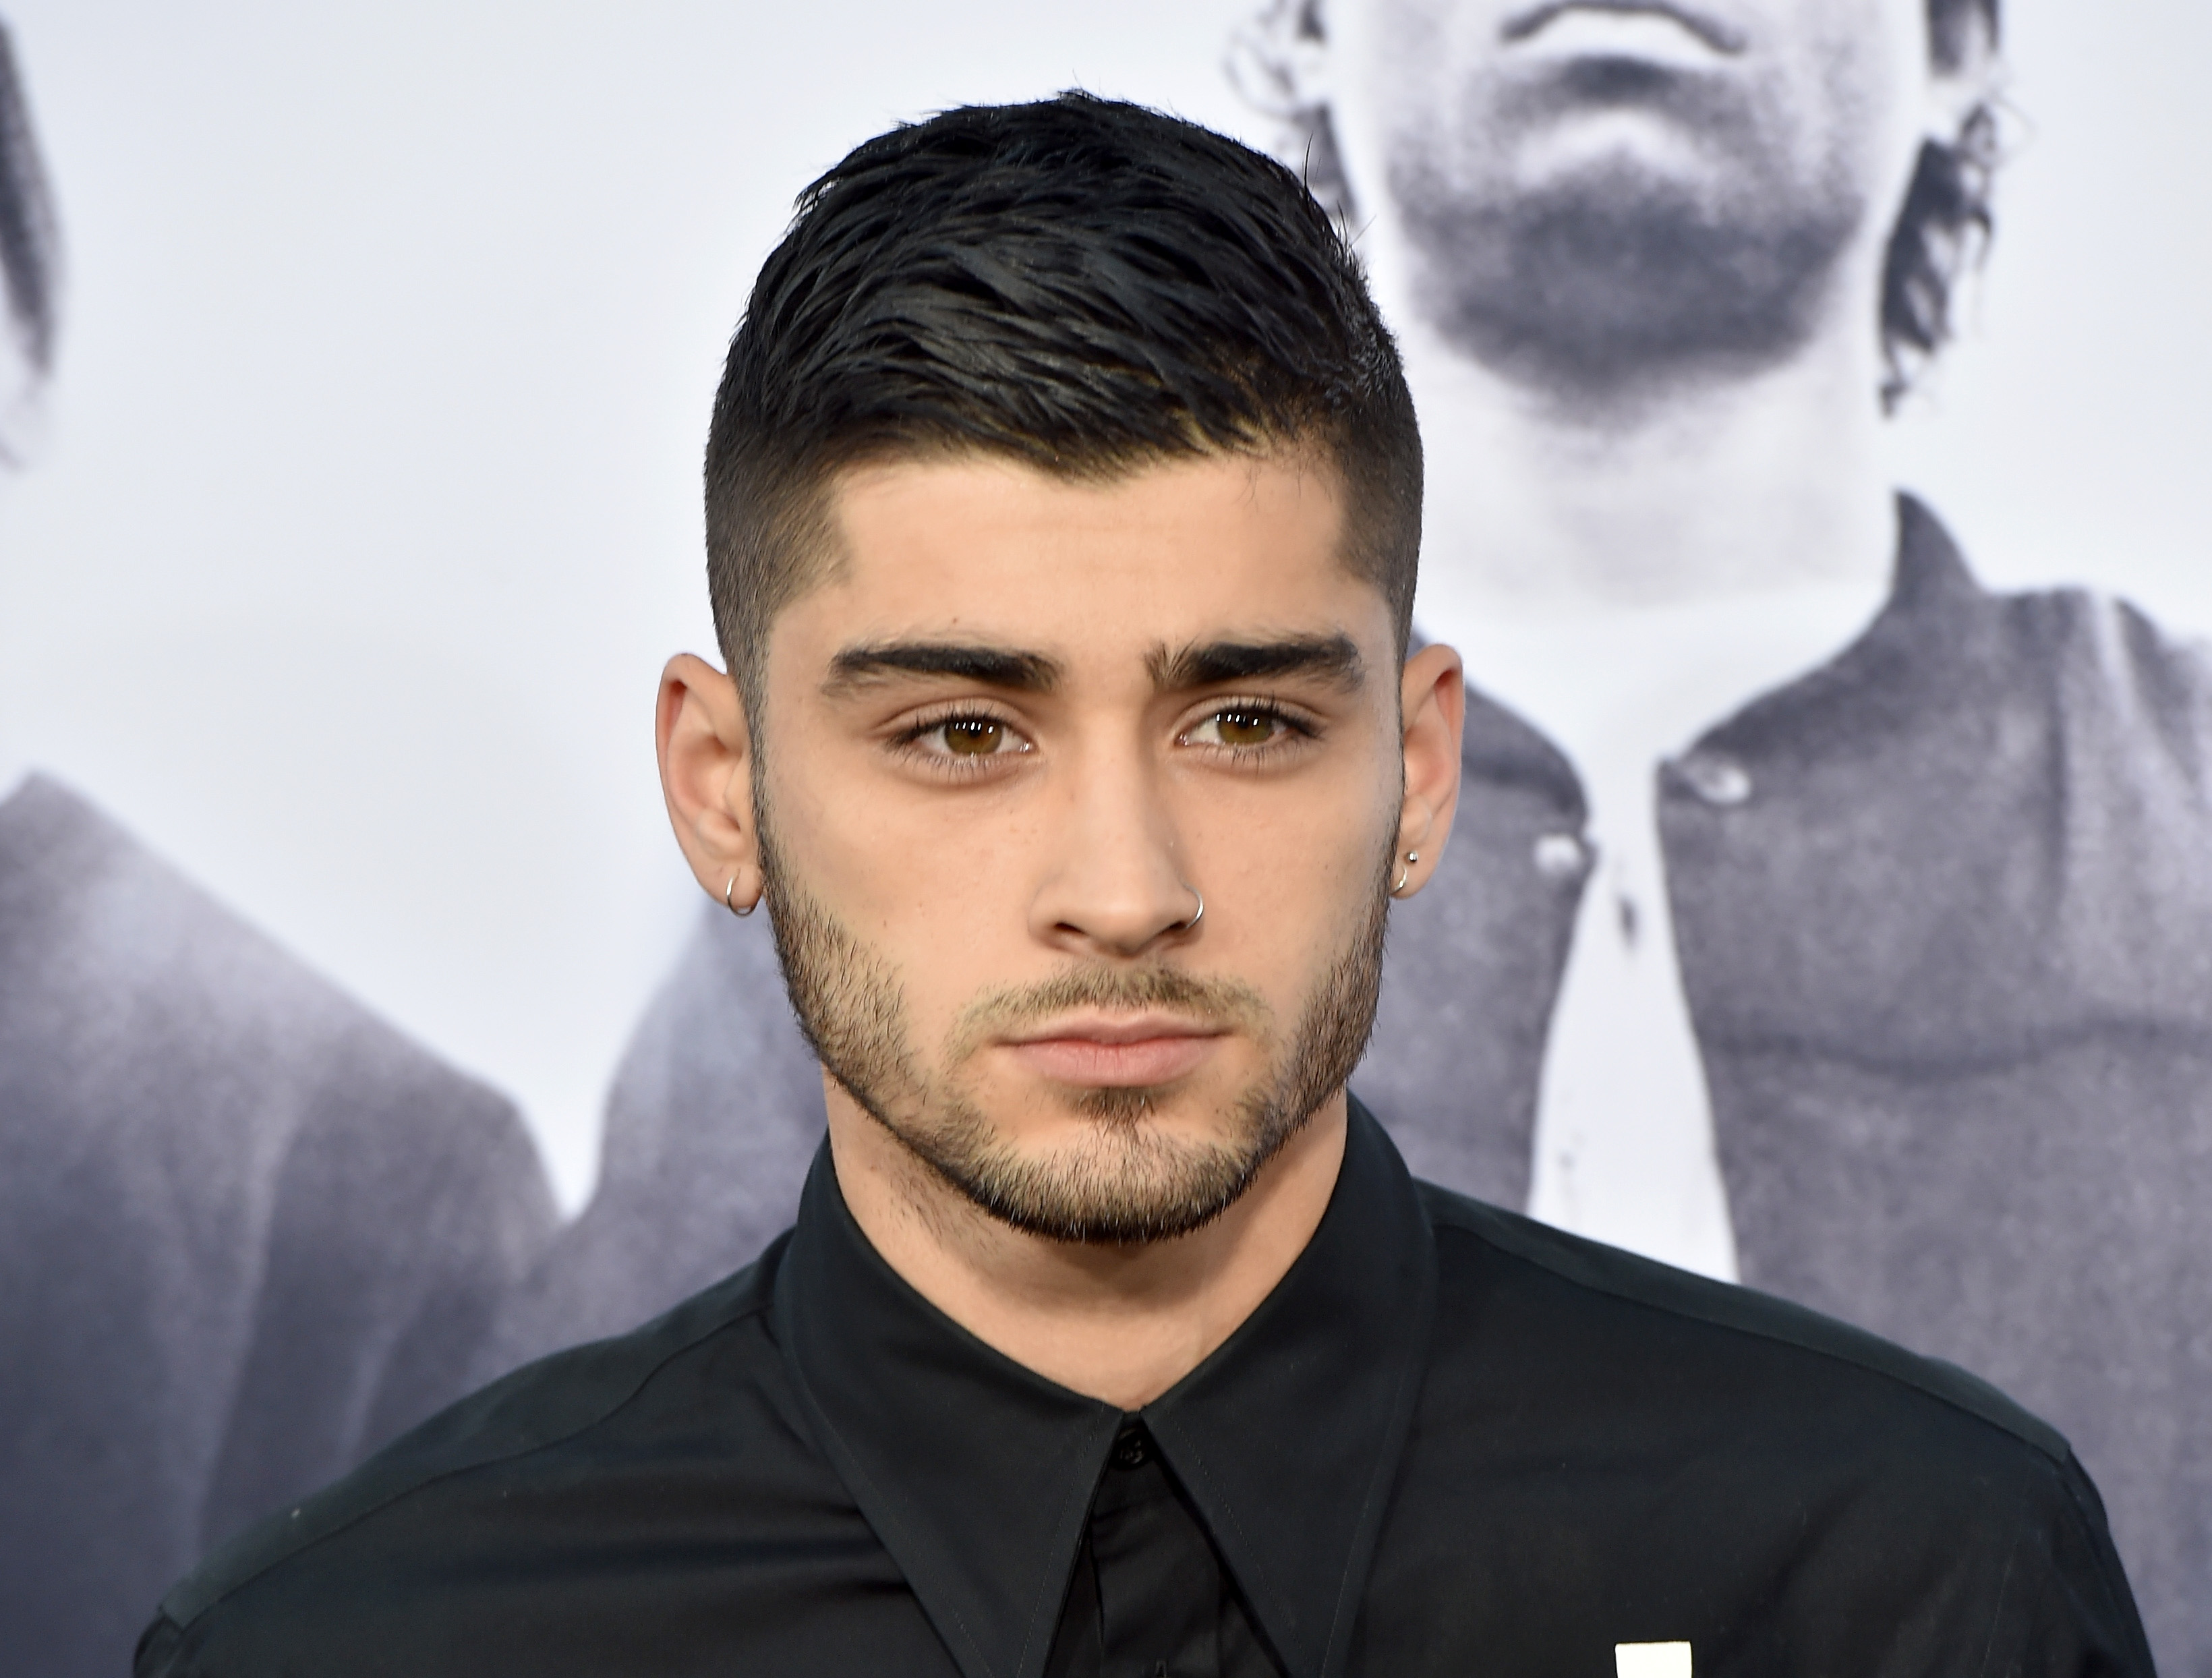 Zayn Malik      Famous celebrities who are Muslim   Pictures   CBS News